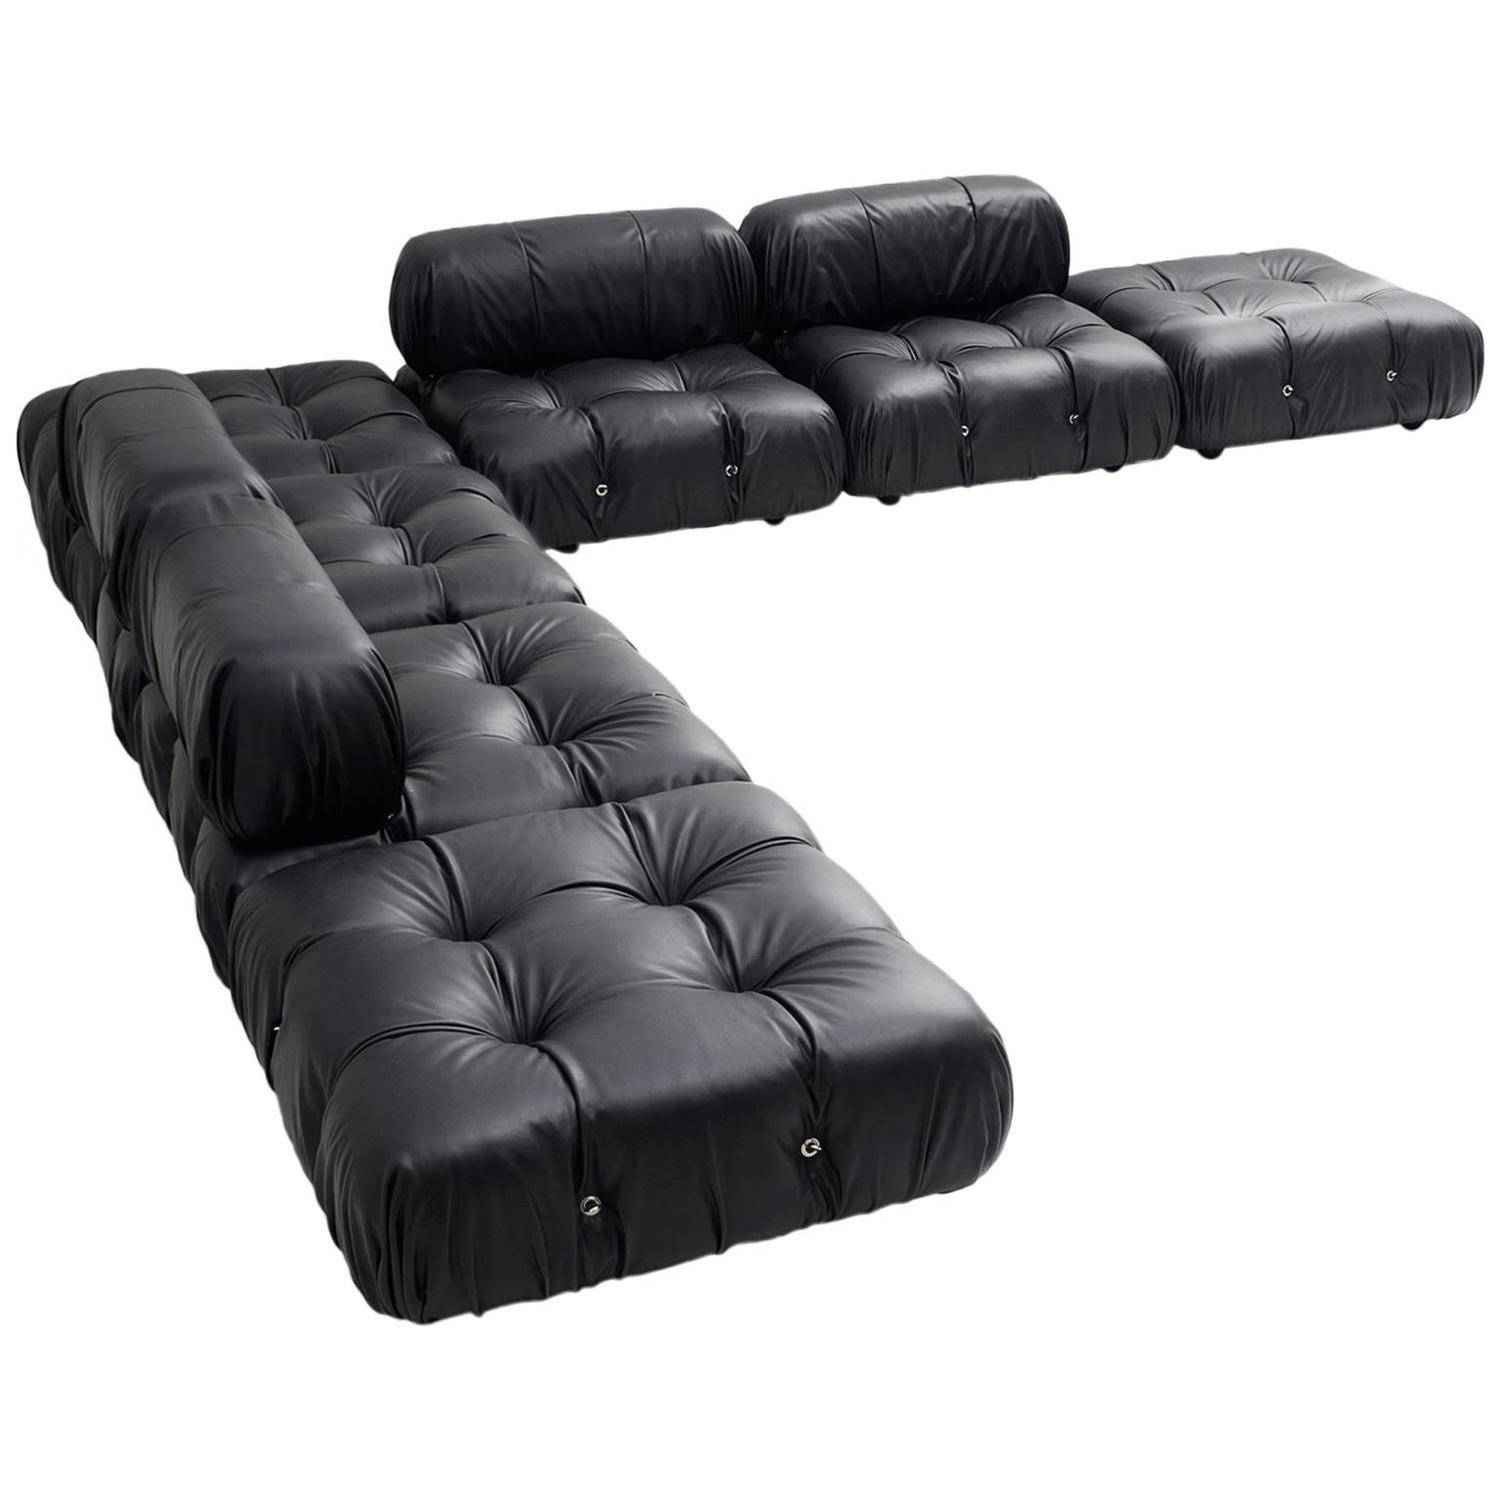 Mario Bellini Modular Sofa 'camaleonda' At 1stdibs Throughout Bellini Sofas (View 12 of 15)